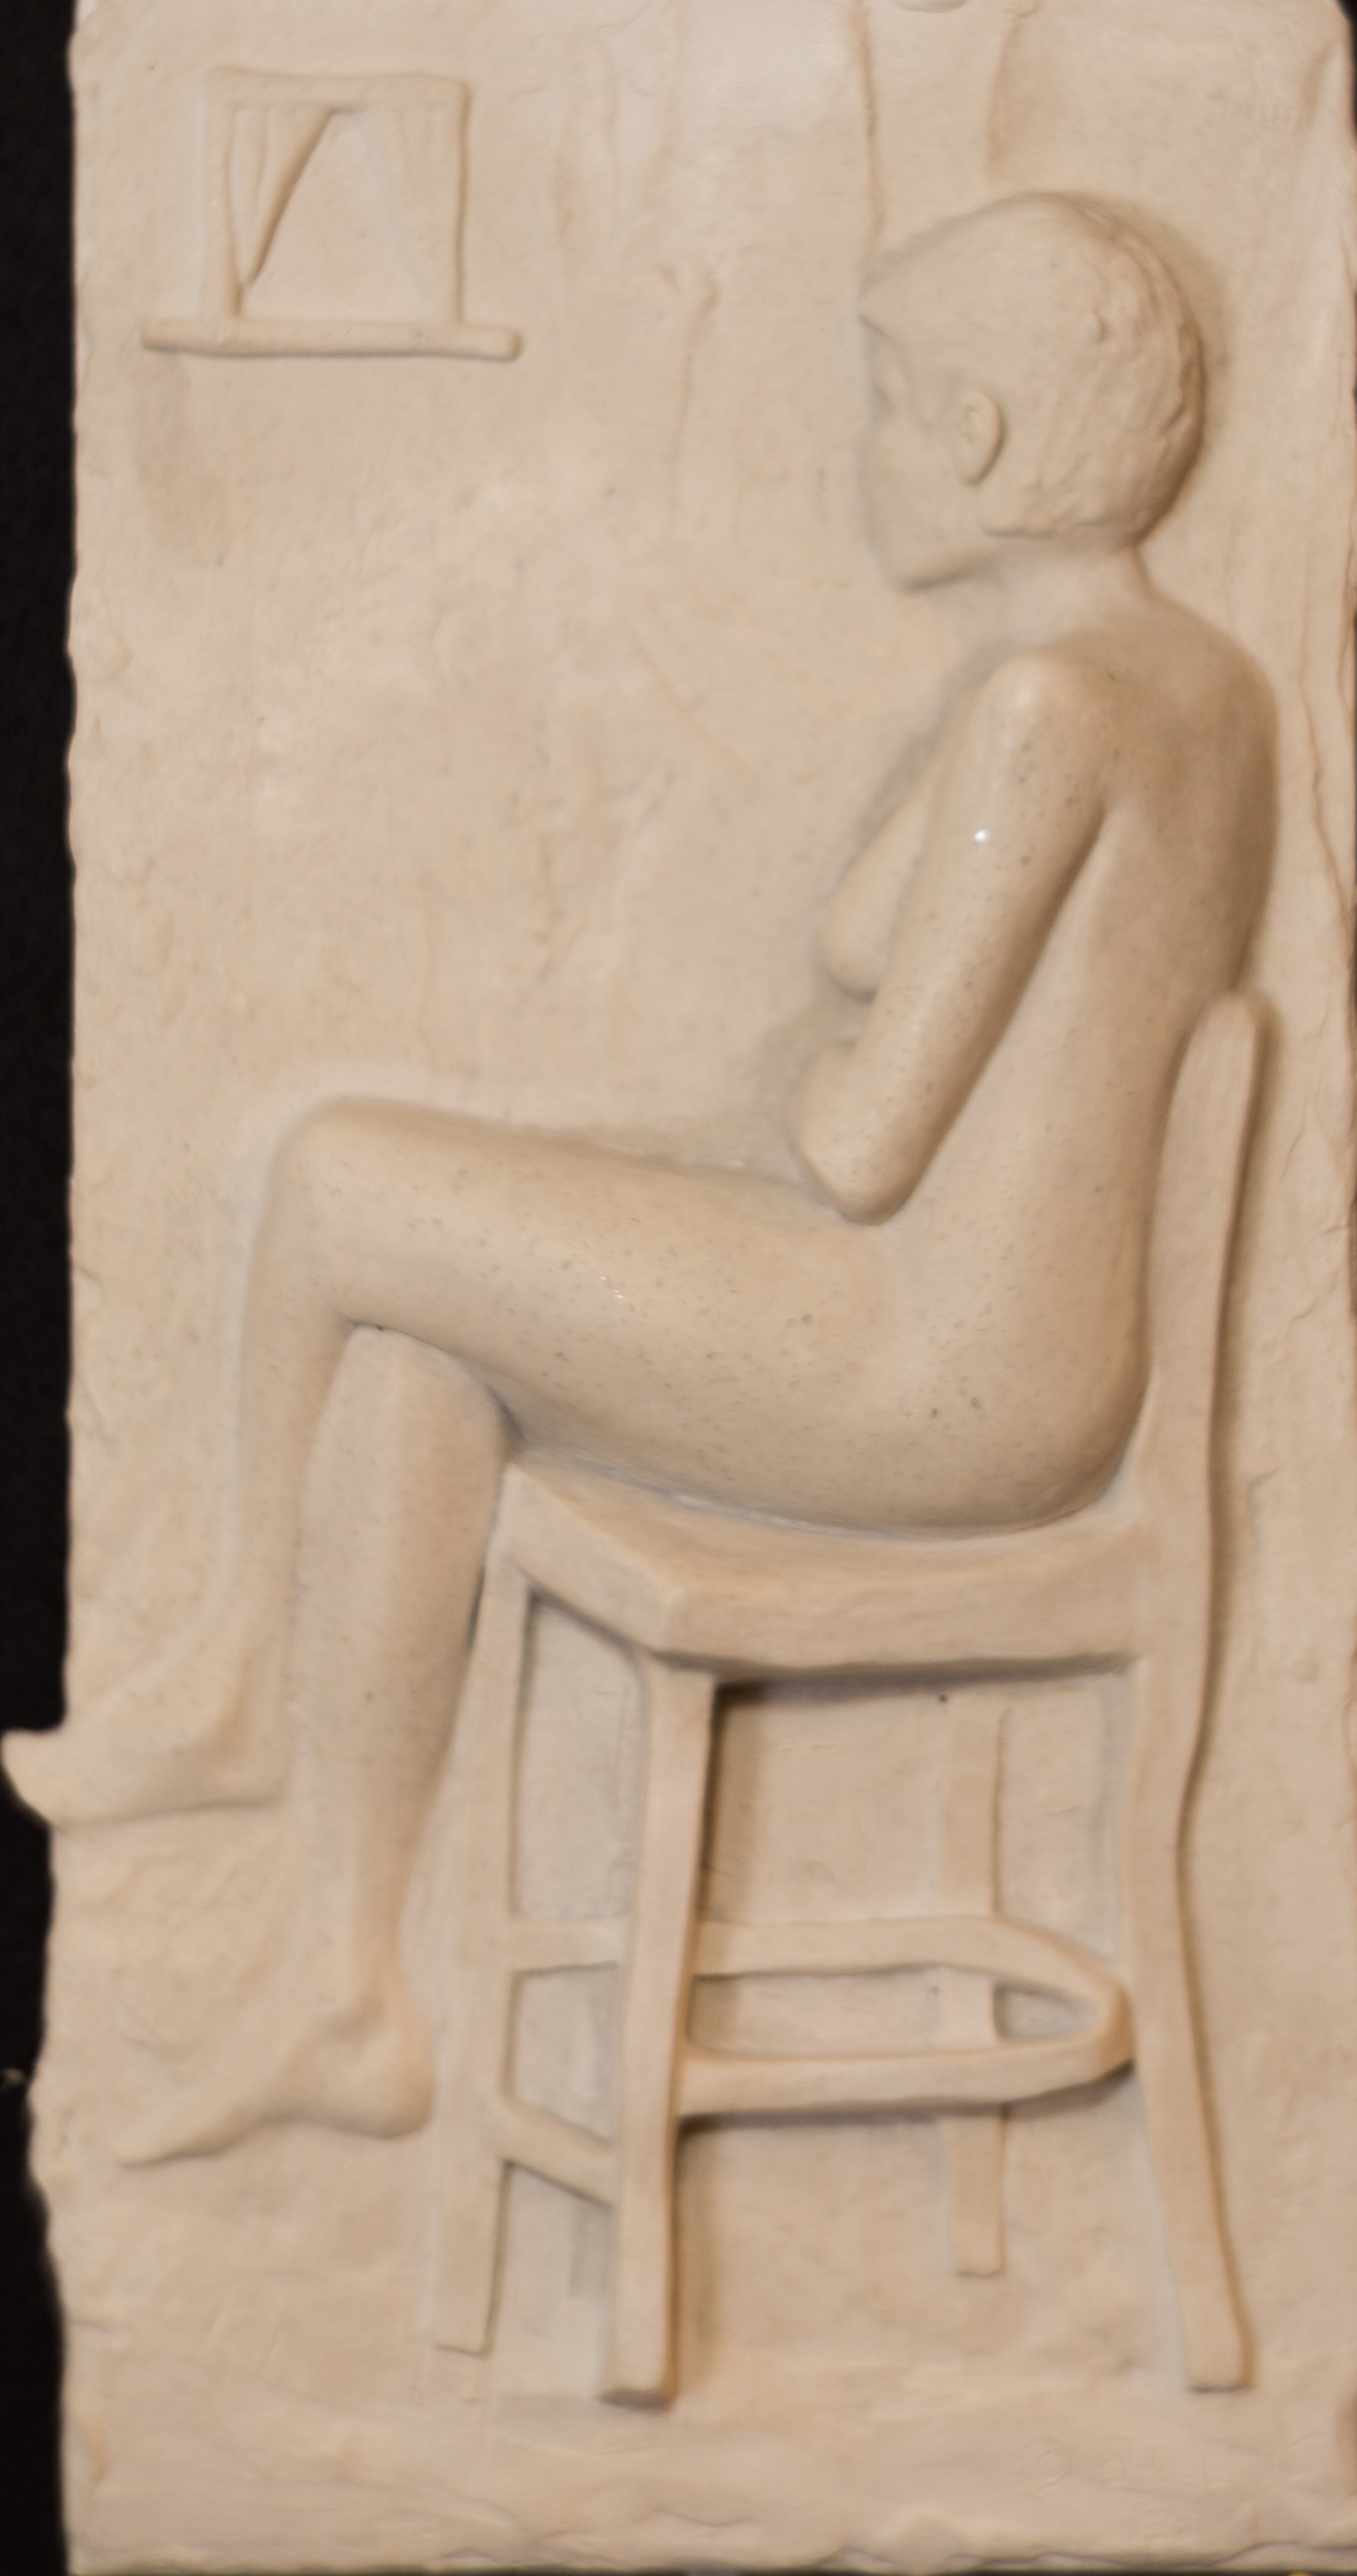 Isobelle sur Chaise (2015) FMG Marble, Edition: 30, 12x6x.25in. $800